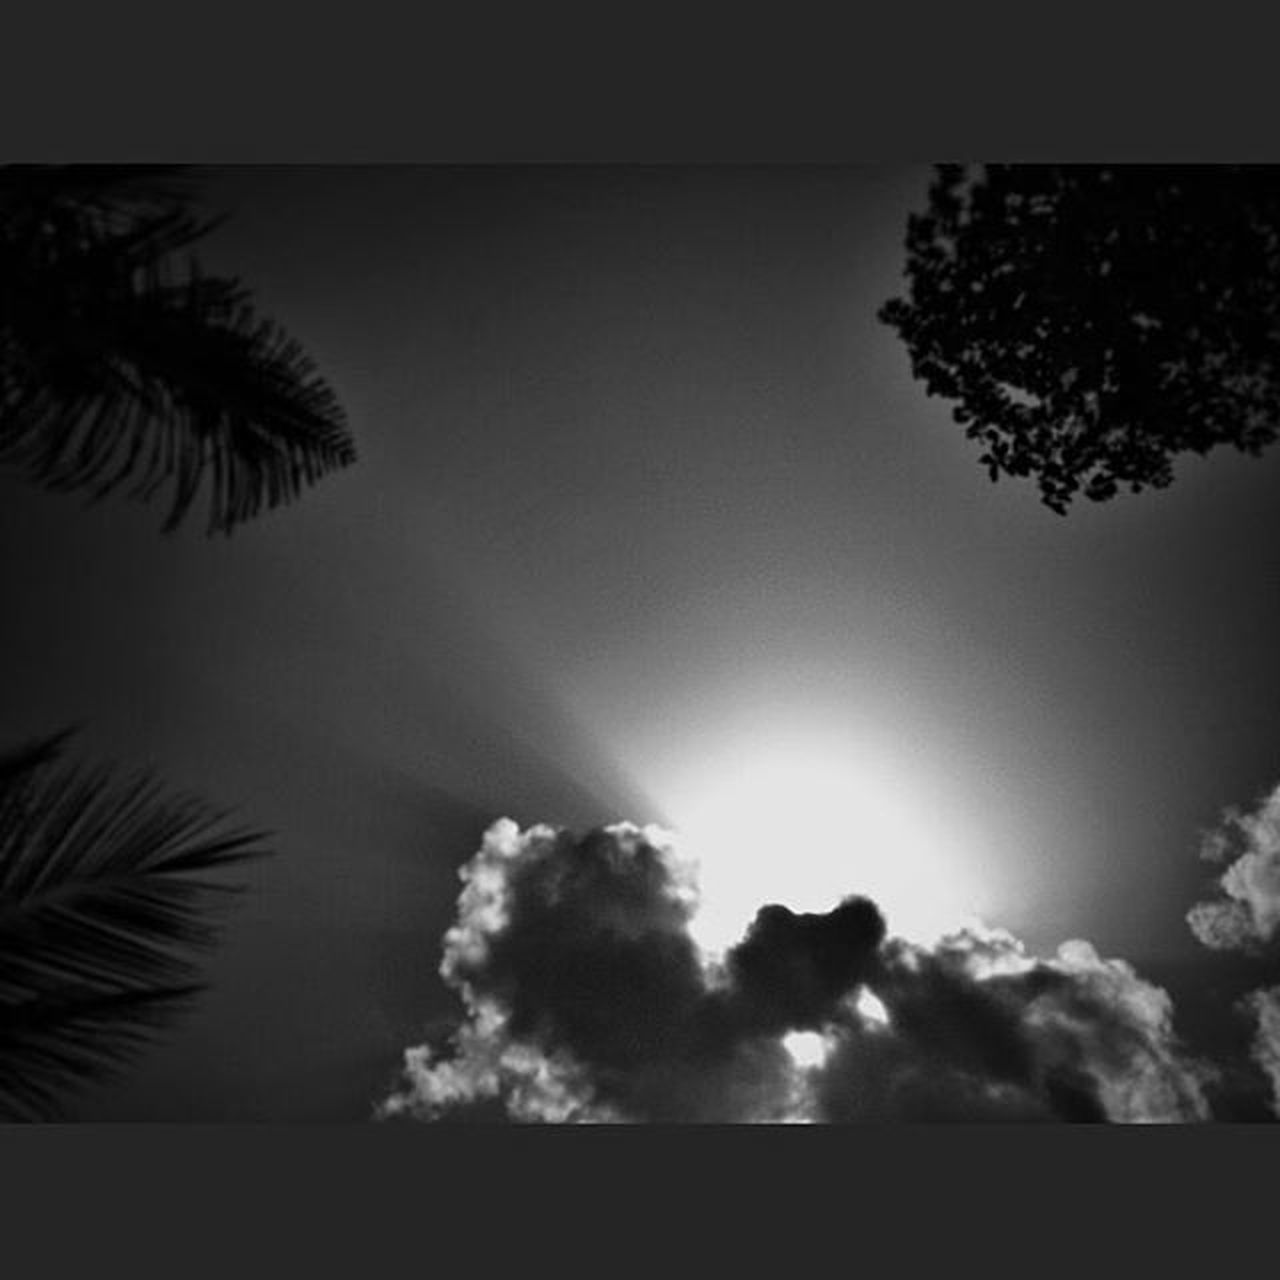 silhouette, sky, no people, tree, day, nature, palm tree, outdoors, low angle view, beauty in nature, close-up